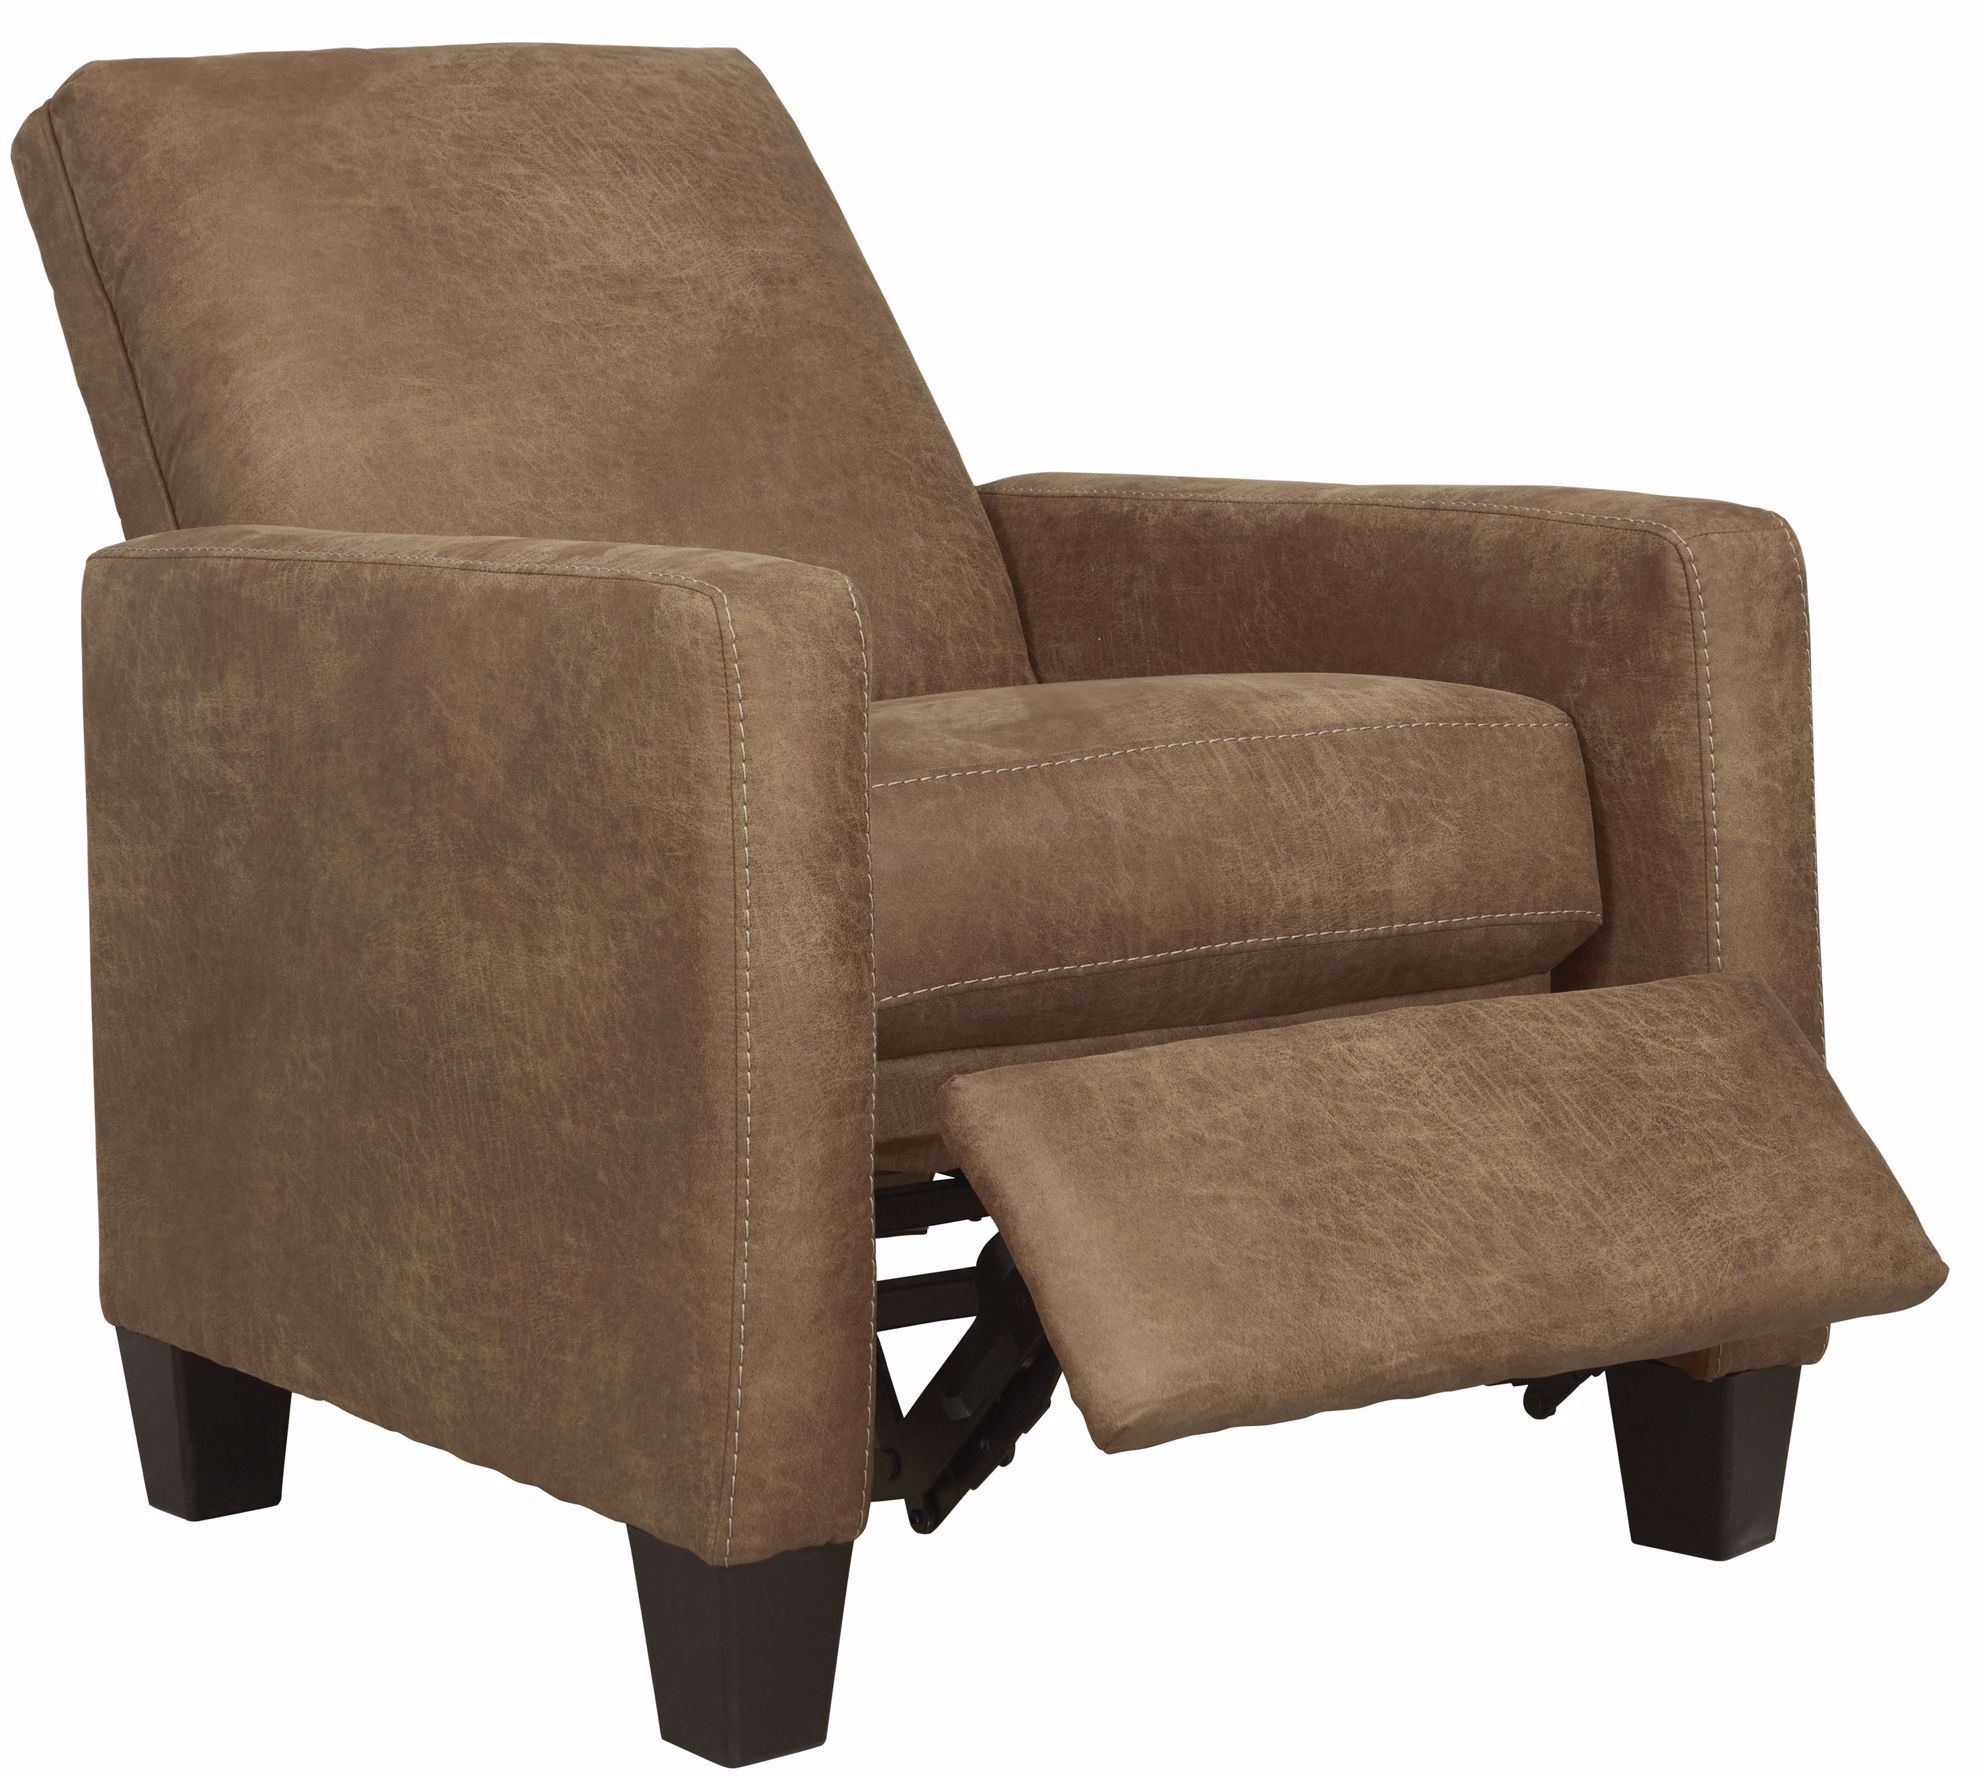 Picture of Dattner Carmel Low-Leg Recliner